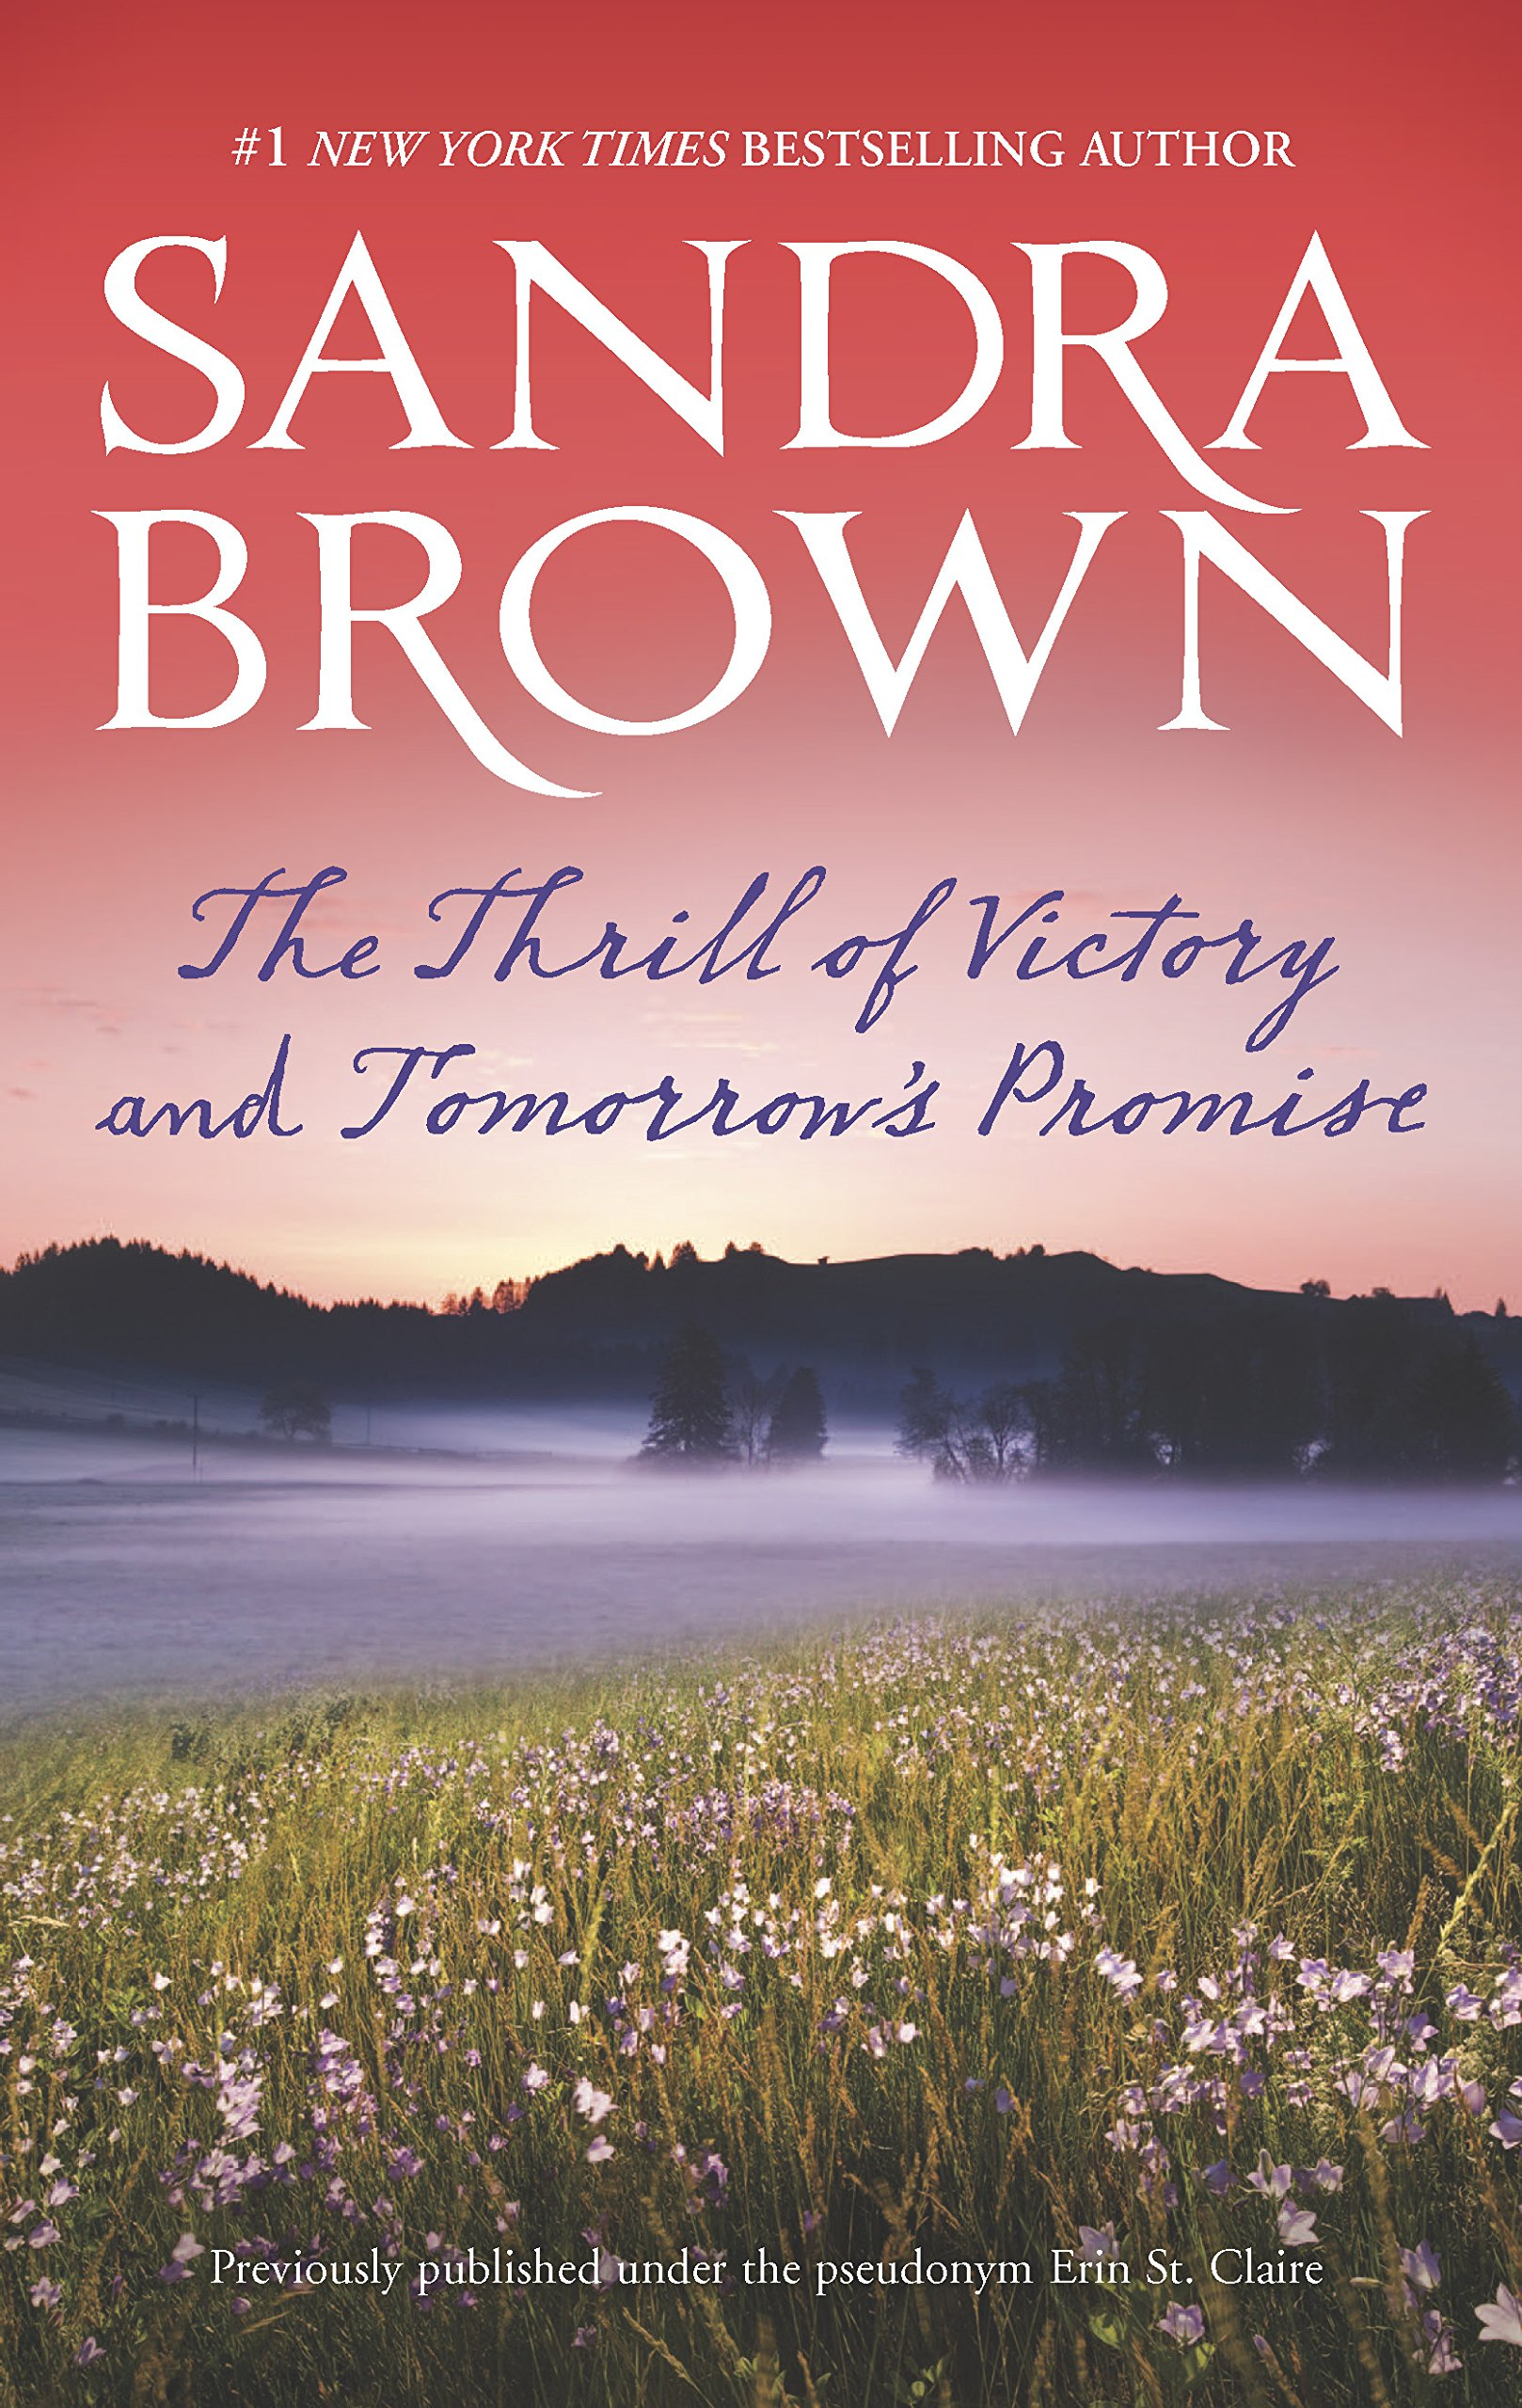 The Thrill of Victory and Tomorrow's Promise: An Anthology: Sandra Brown:  9780778316060: Amazon.com: Books